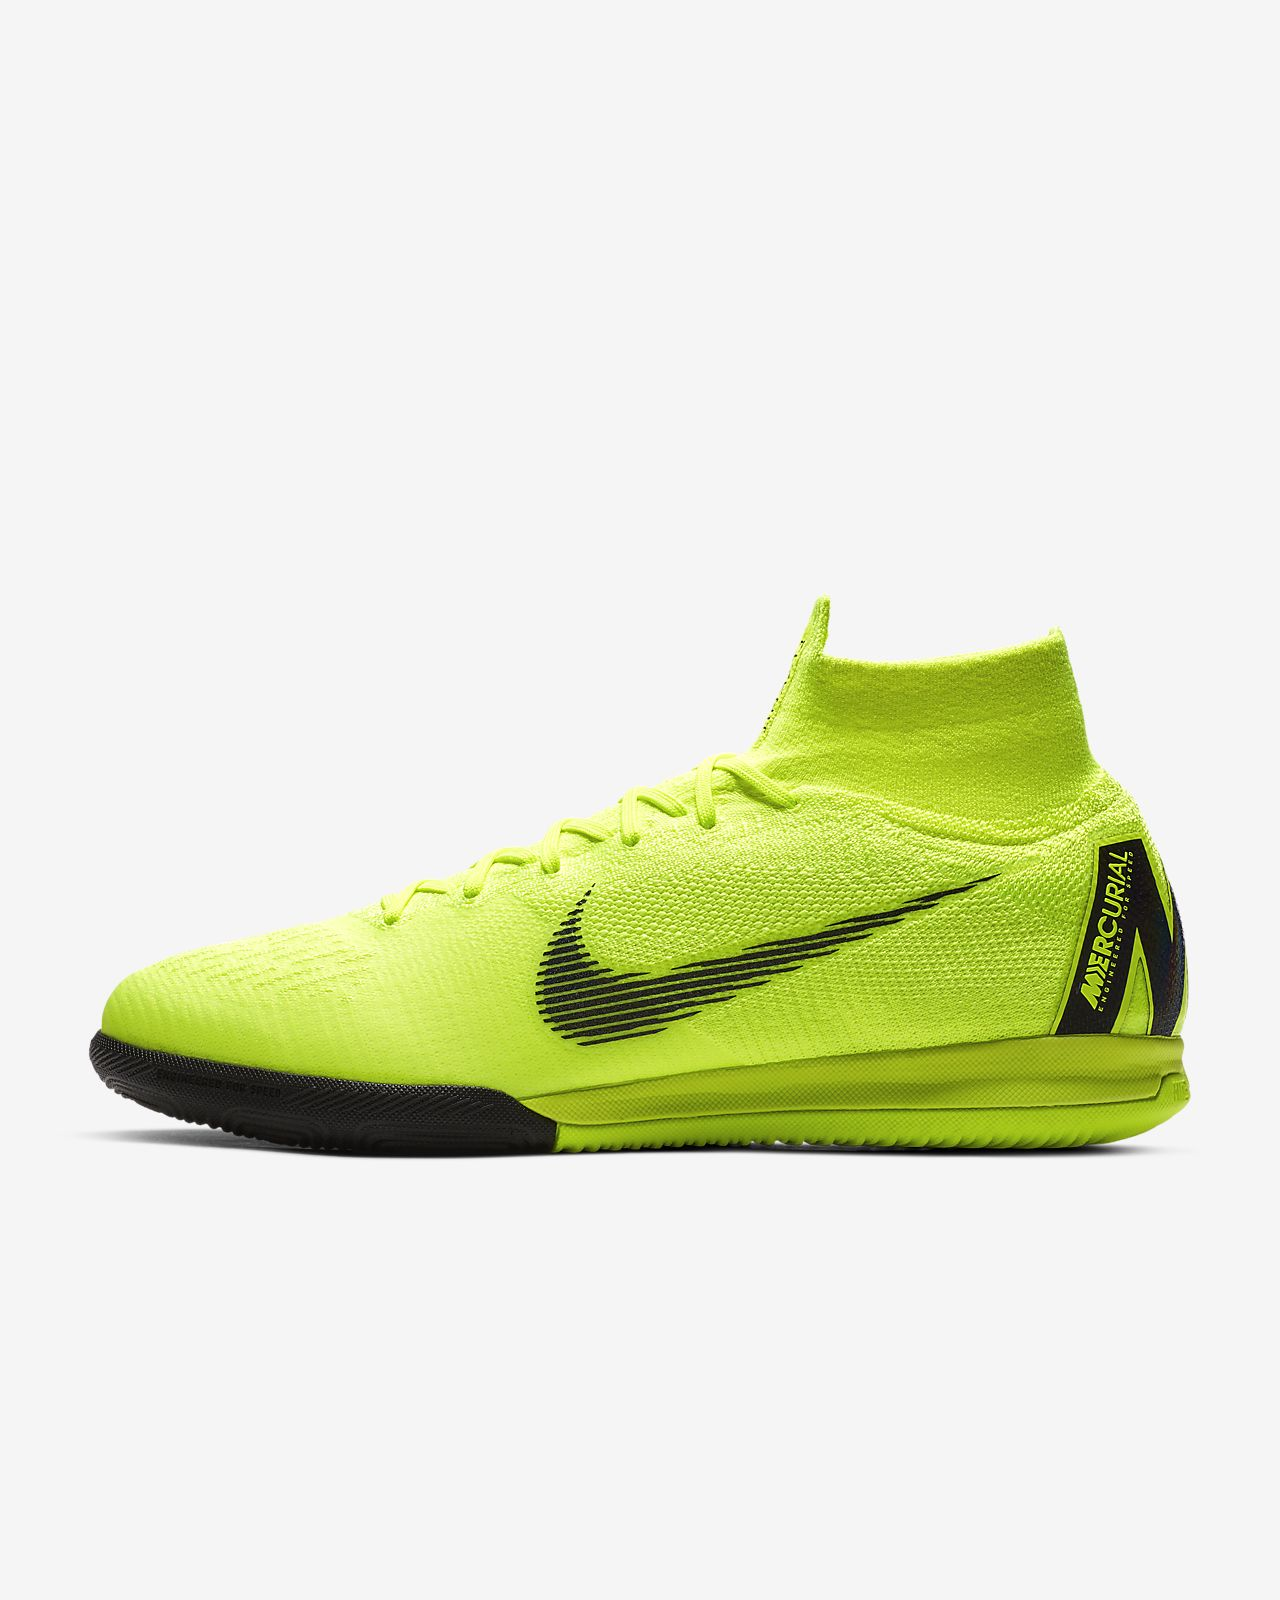 Nike MercurialX Superfly 360 Elite IndoorCourt Soccer Shoe